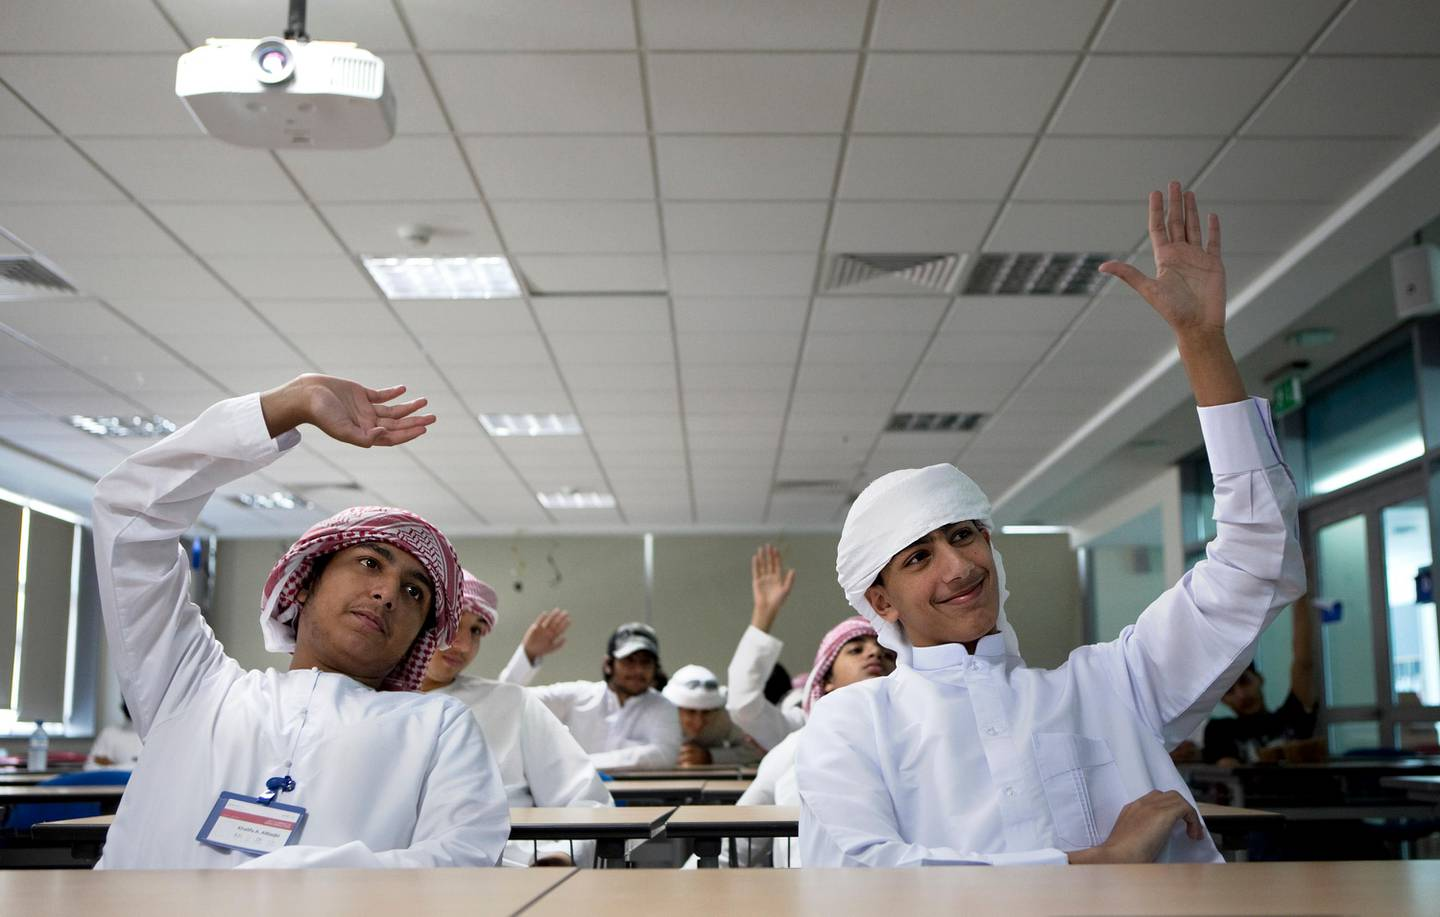 Right to left, Khalifa al Naqbi, 17, and Yusuf al Kendi, react to a question in 'Technology Business Incubation' lecture on Monday, July 11, 2011, the second day of a three-week-long summer camp for the Emirati youth at the Glenelg Primary School in Abu Dhabi. The program, run by the American University of Sharja in association with ATIC, aims to raise interest among the young Emiratis in the semiconductor microelectronics technology and the industry, and thus invest in the UAE's future, post-oil economy.  (Silvia Razgova/The National)